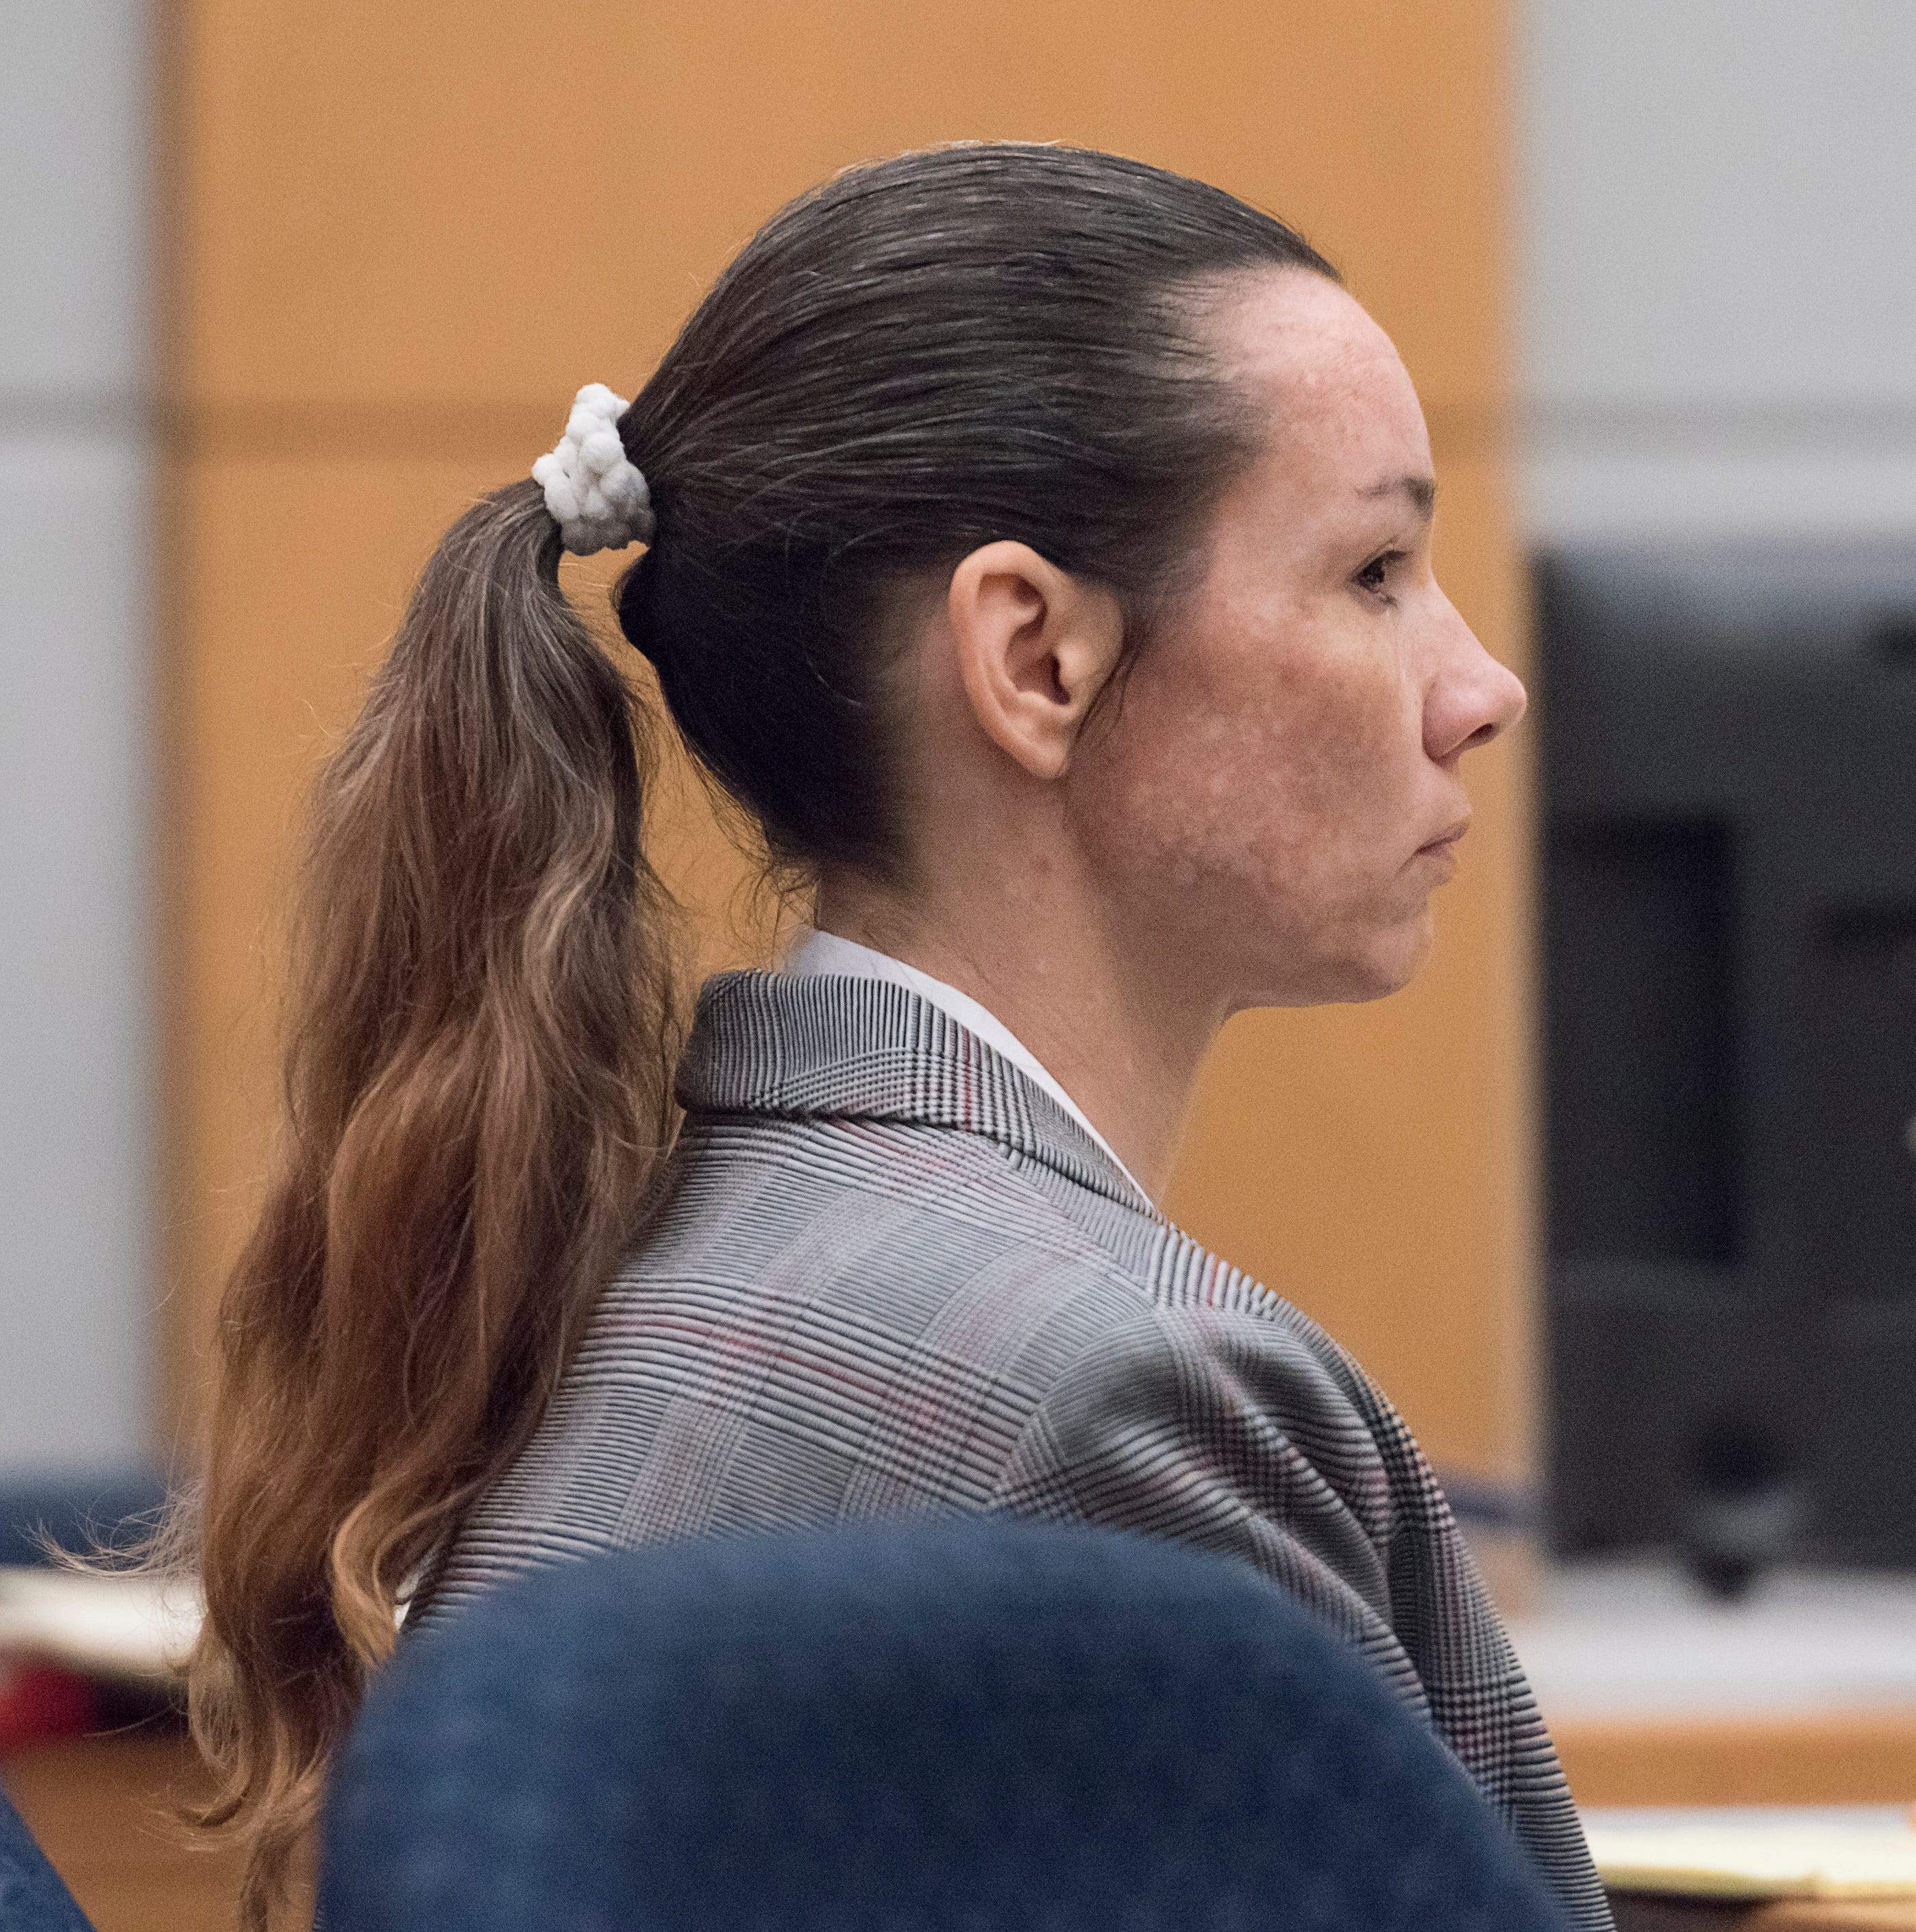 Mary Rice trial begins in Pensacola